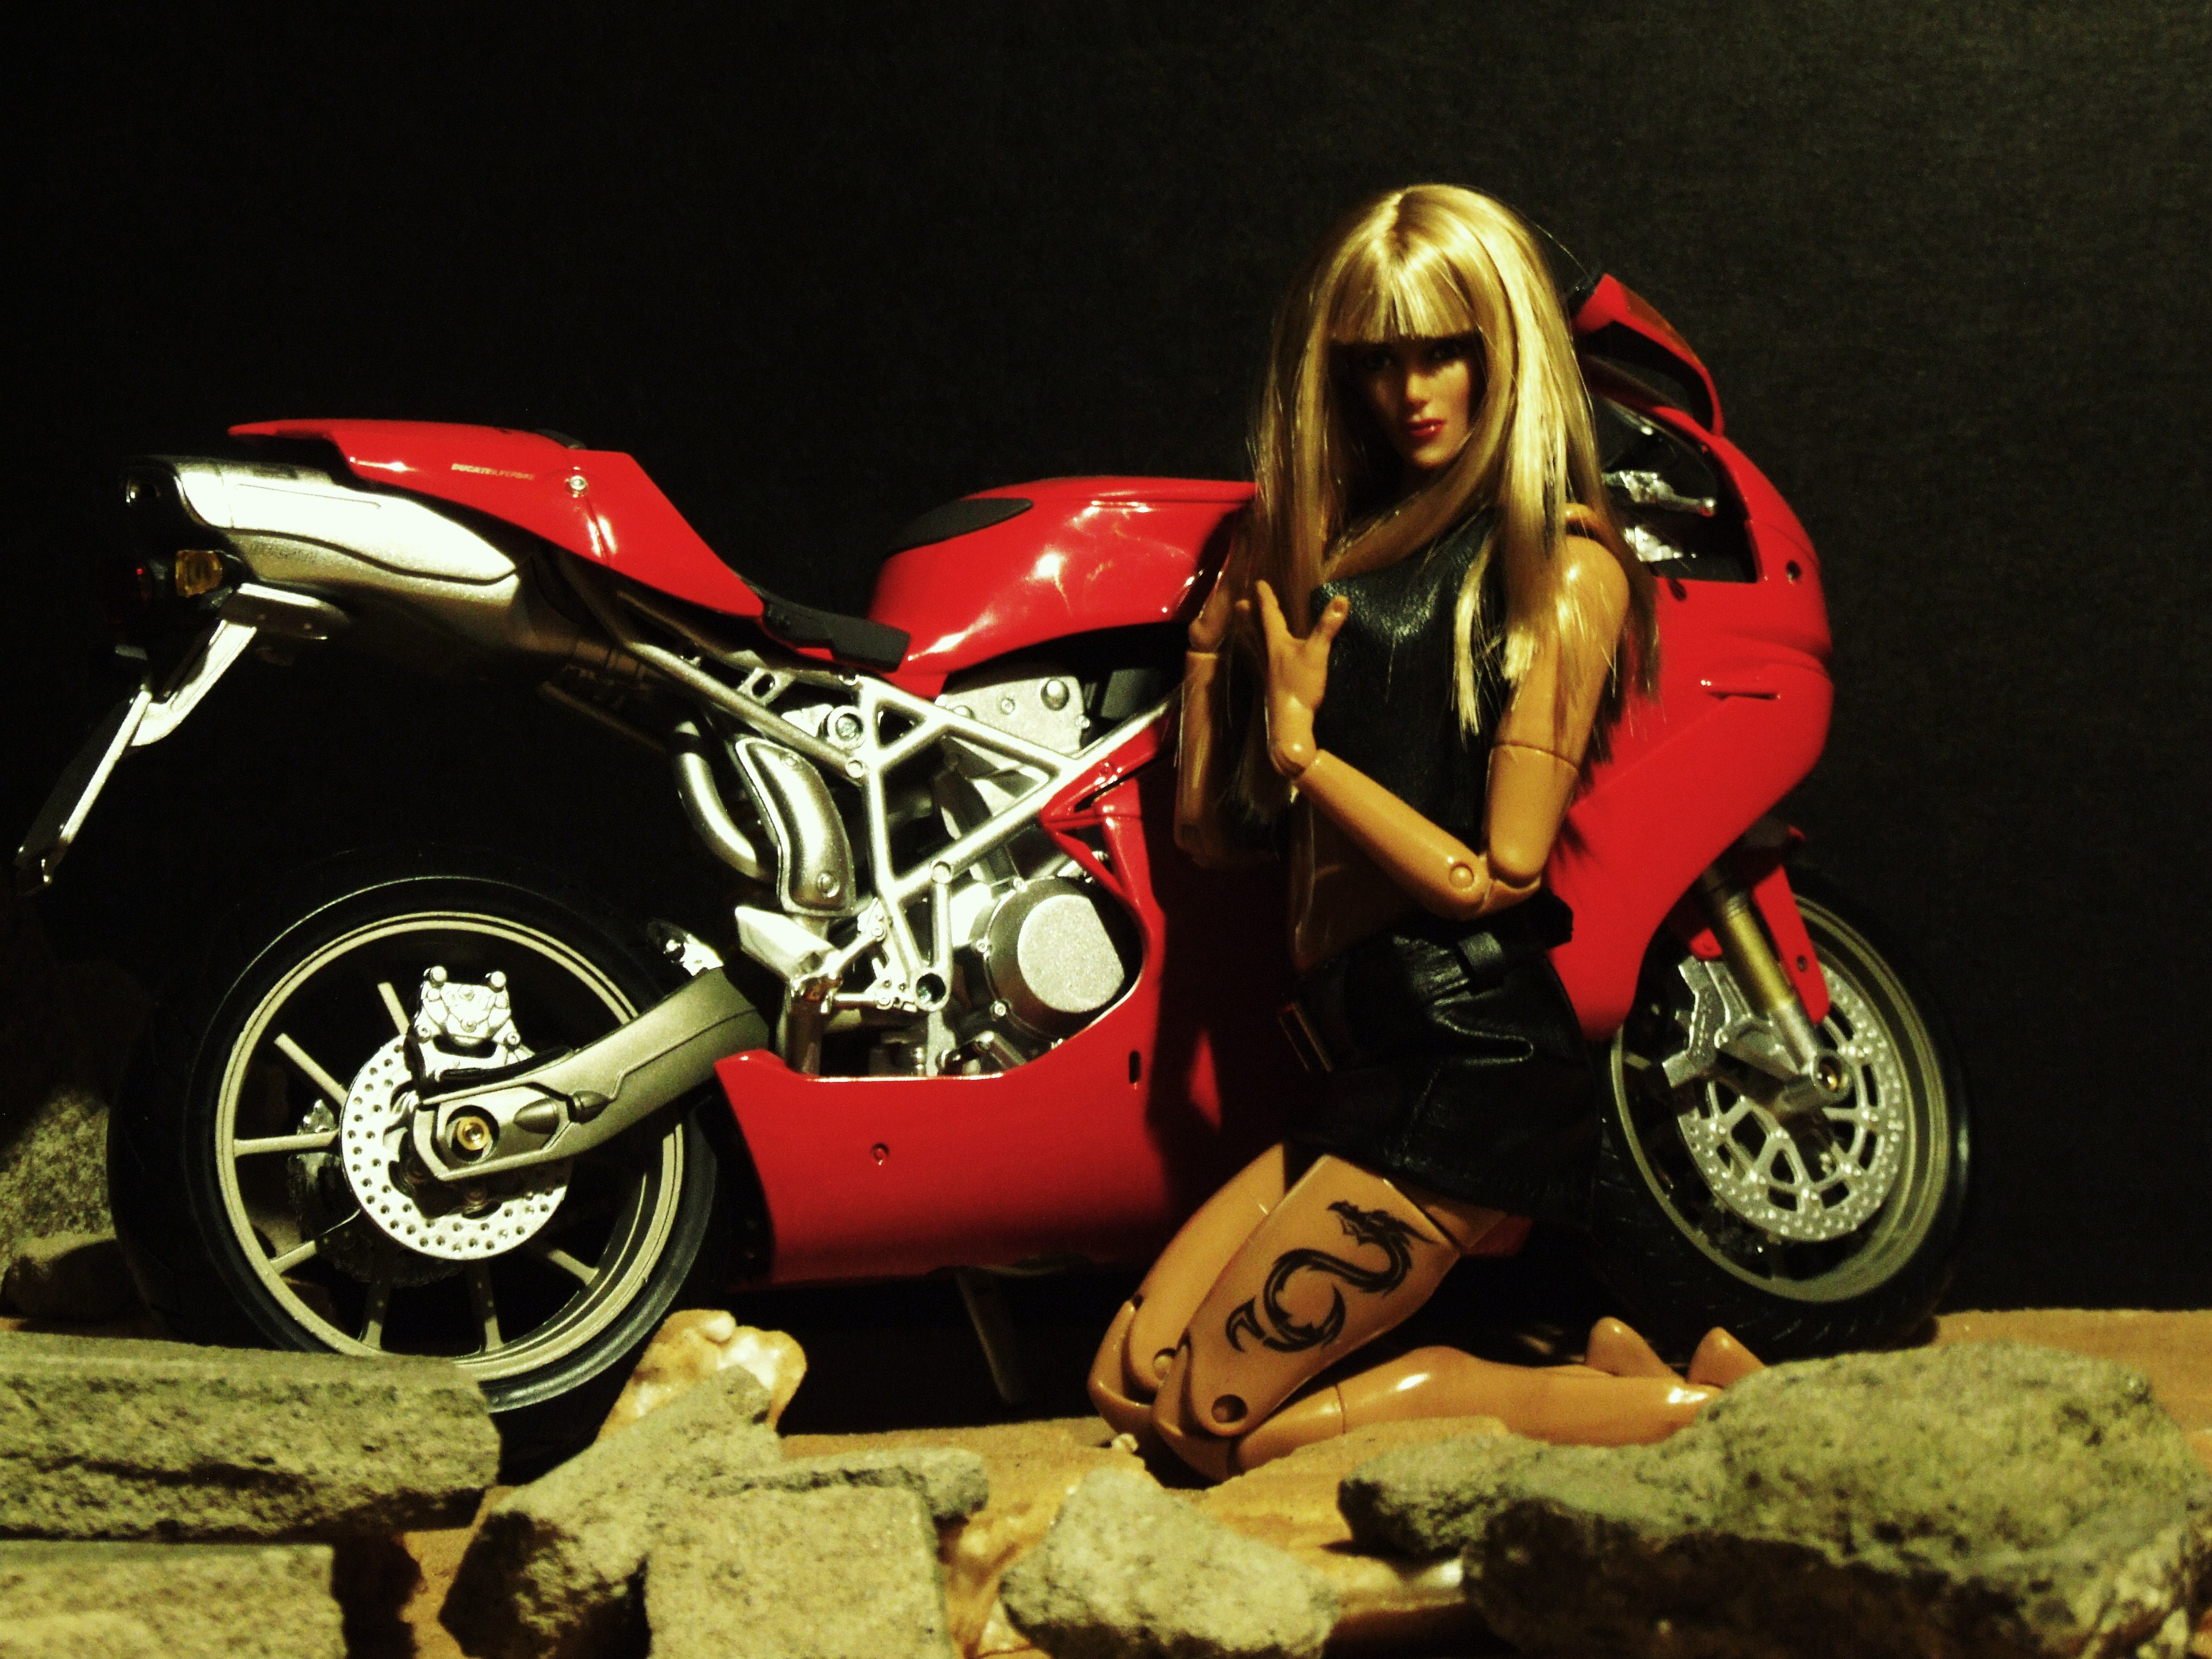 1//6 Scale Collectible Motorcycle Replica Model for 12/'/' Hot Toys Sideshow Figure